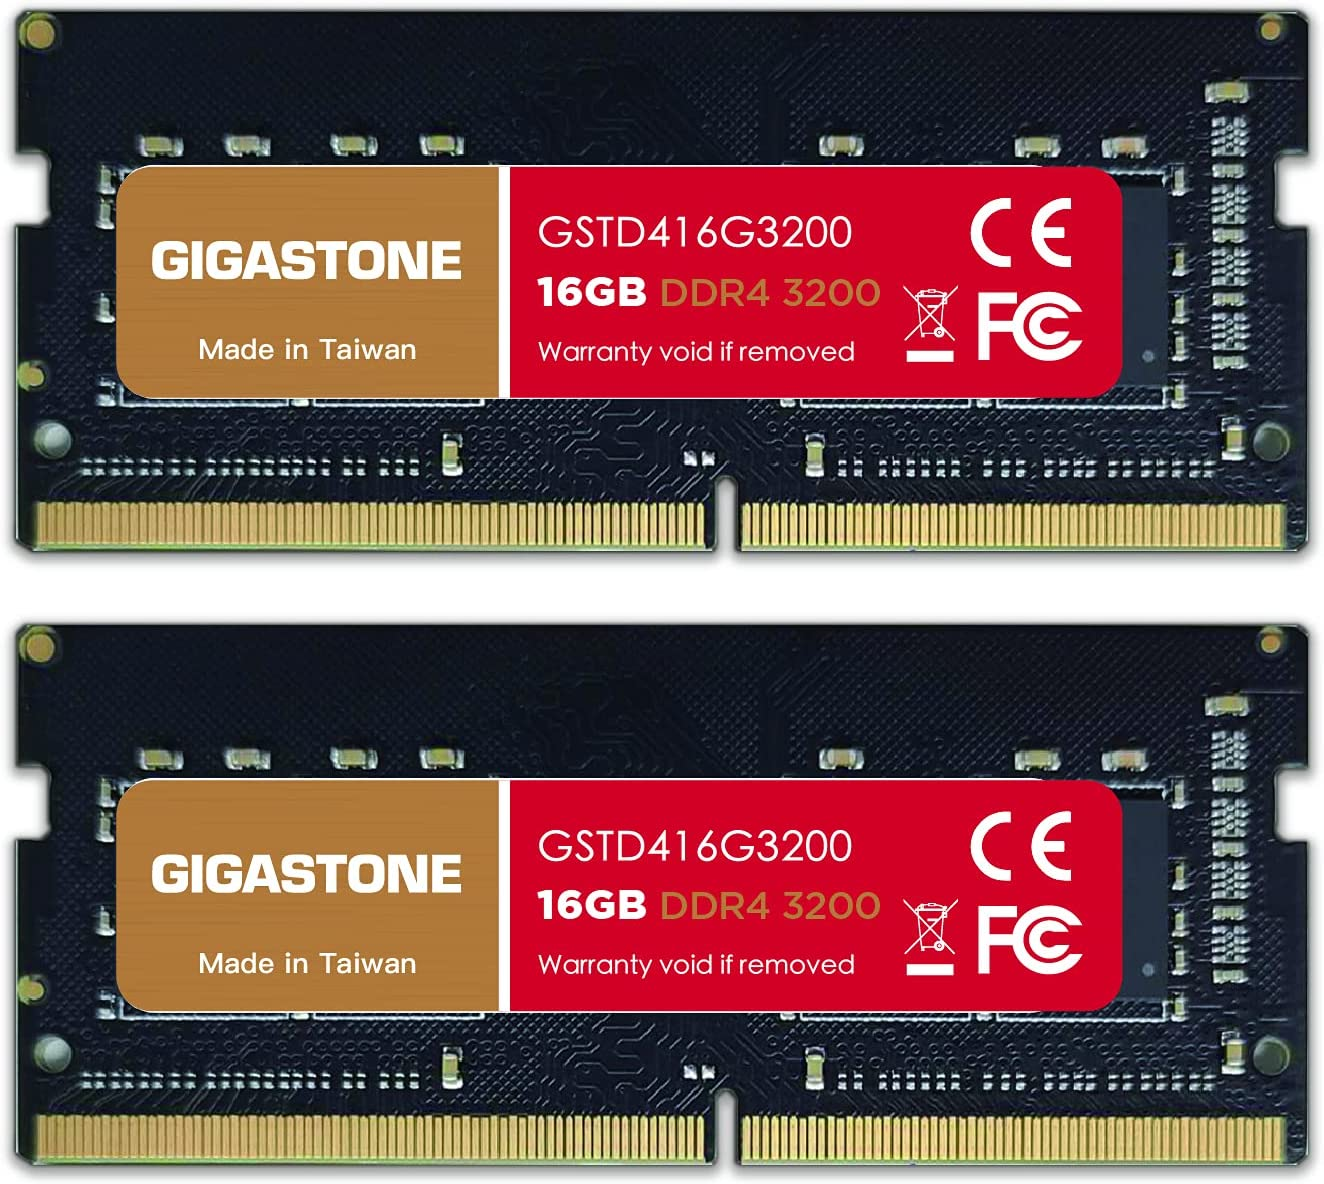 New products world's highest quality popular Gigastone DDR4 32GB 16GBx2 3200MHz 1.2V CL22 PC4-25600 Oakland Mall SODIMM